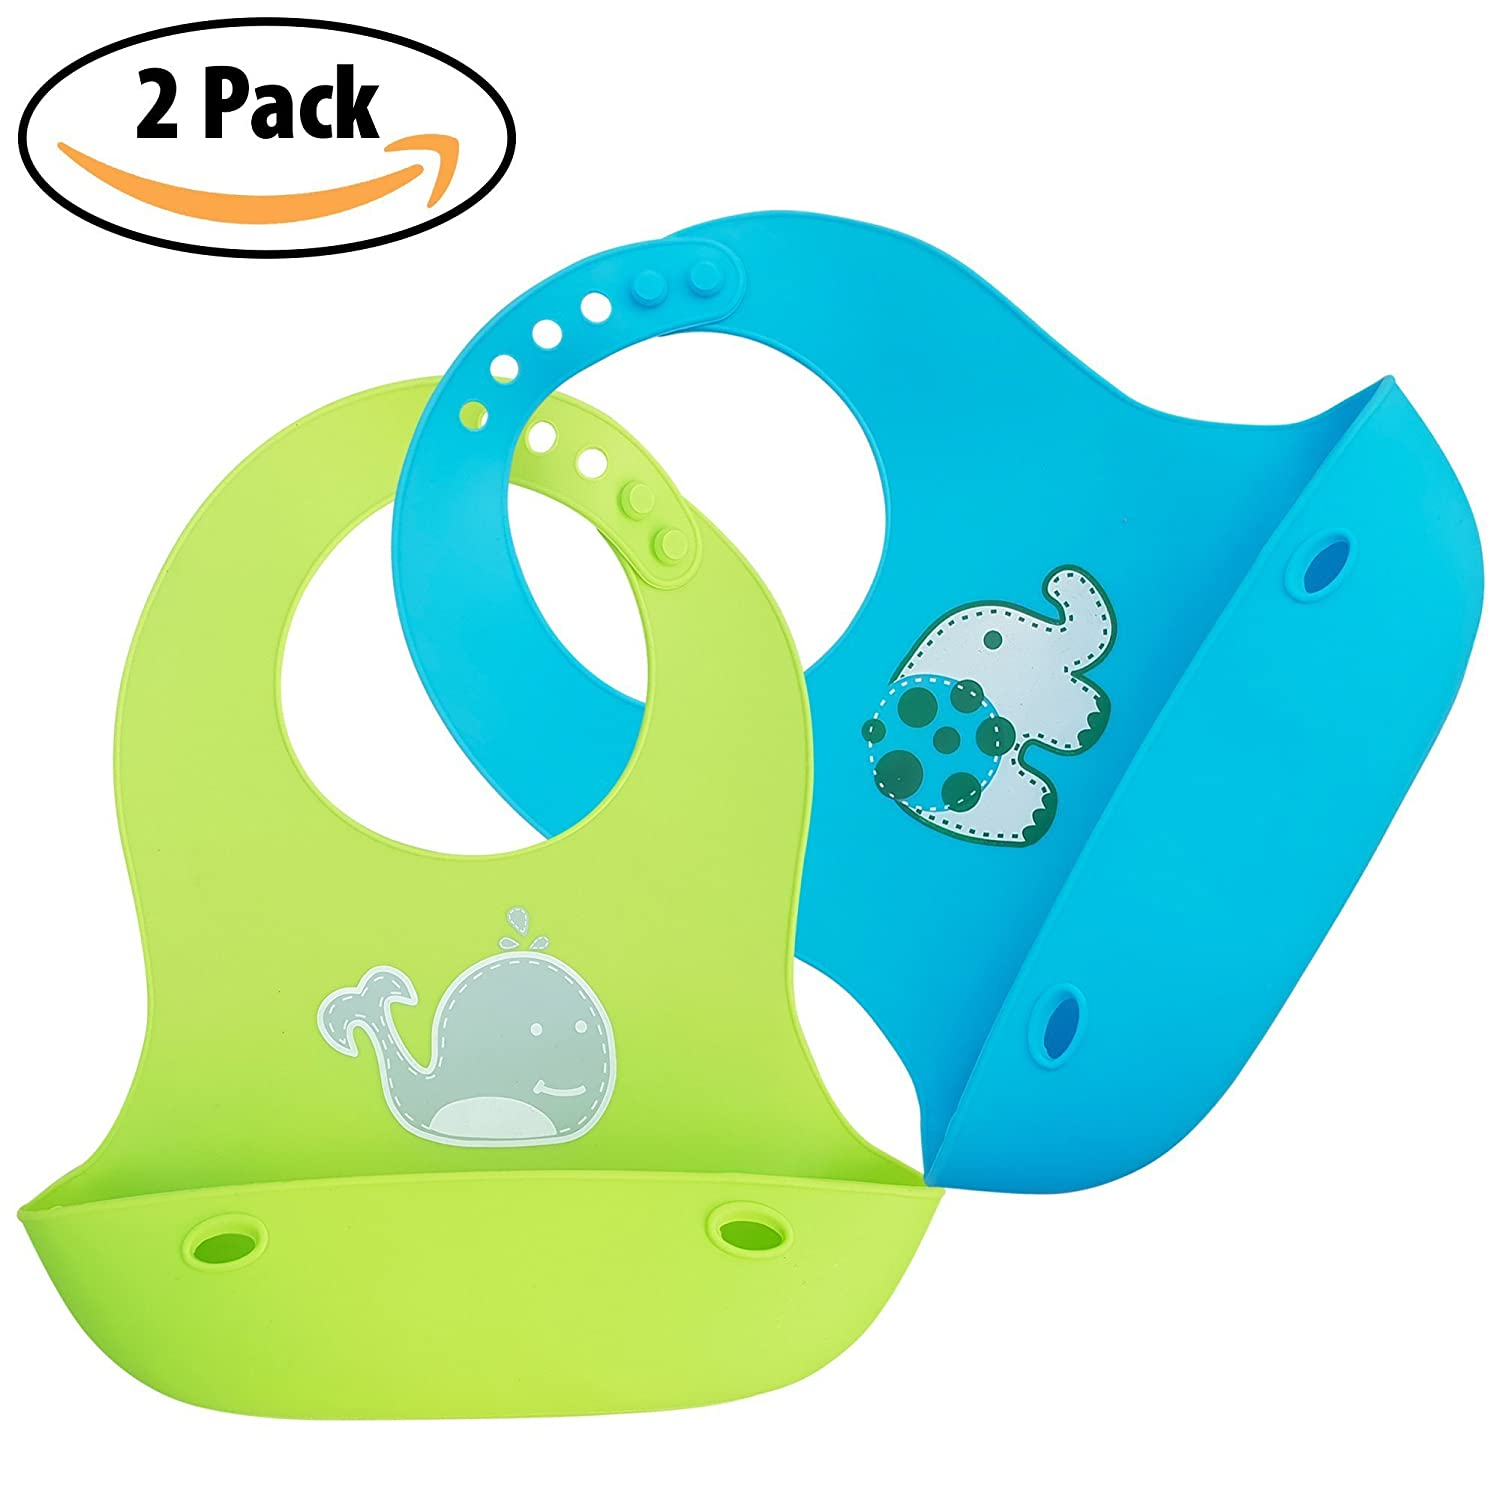 EASY TO CLEAN 2 PACK SILKY SOFT /& COMFORTABLE WEESPROUT SILCONE BABY BIBS